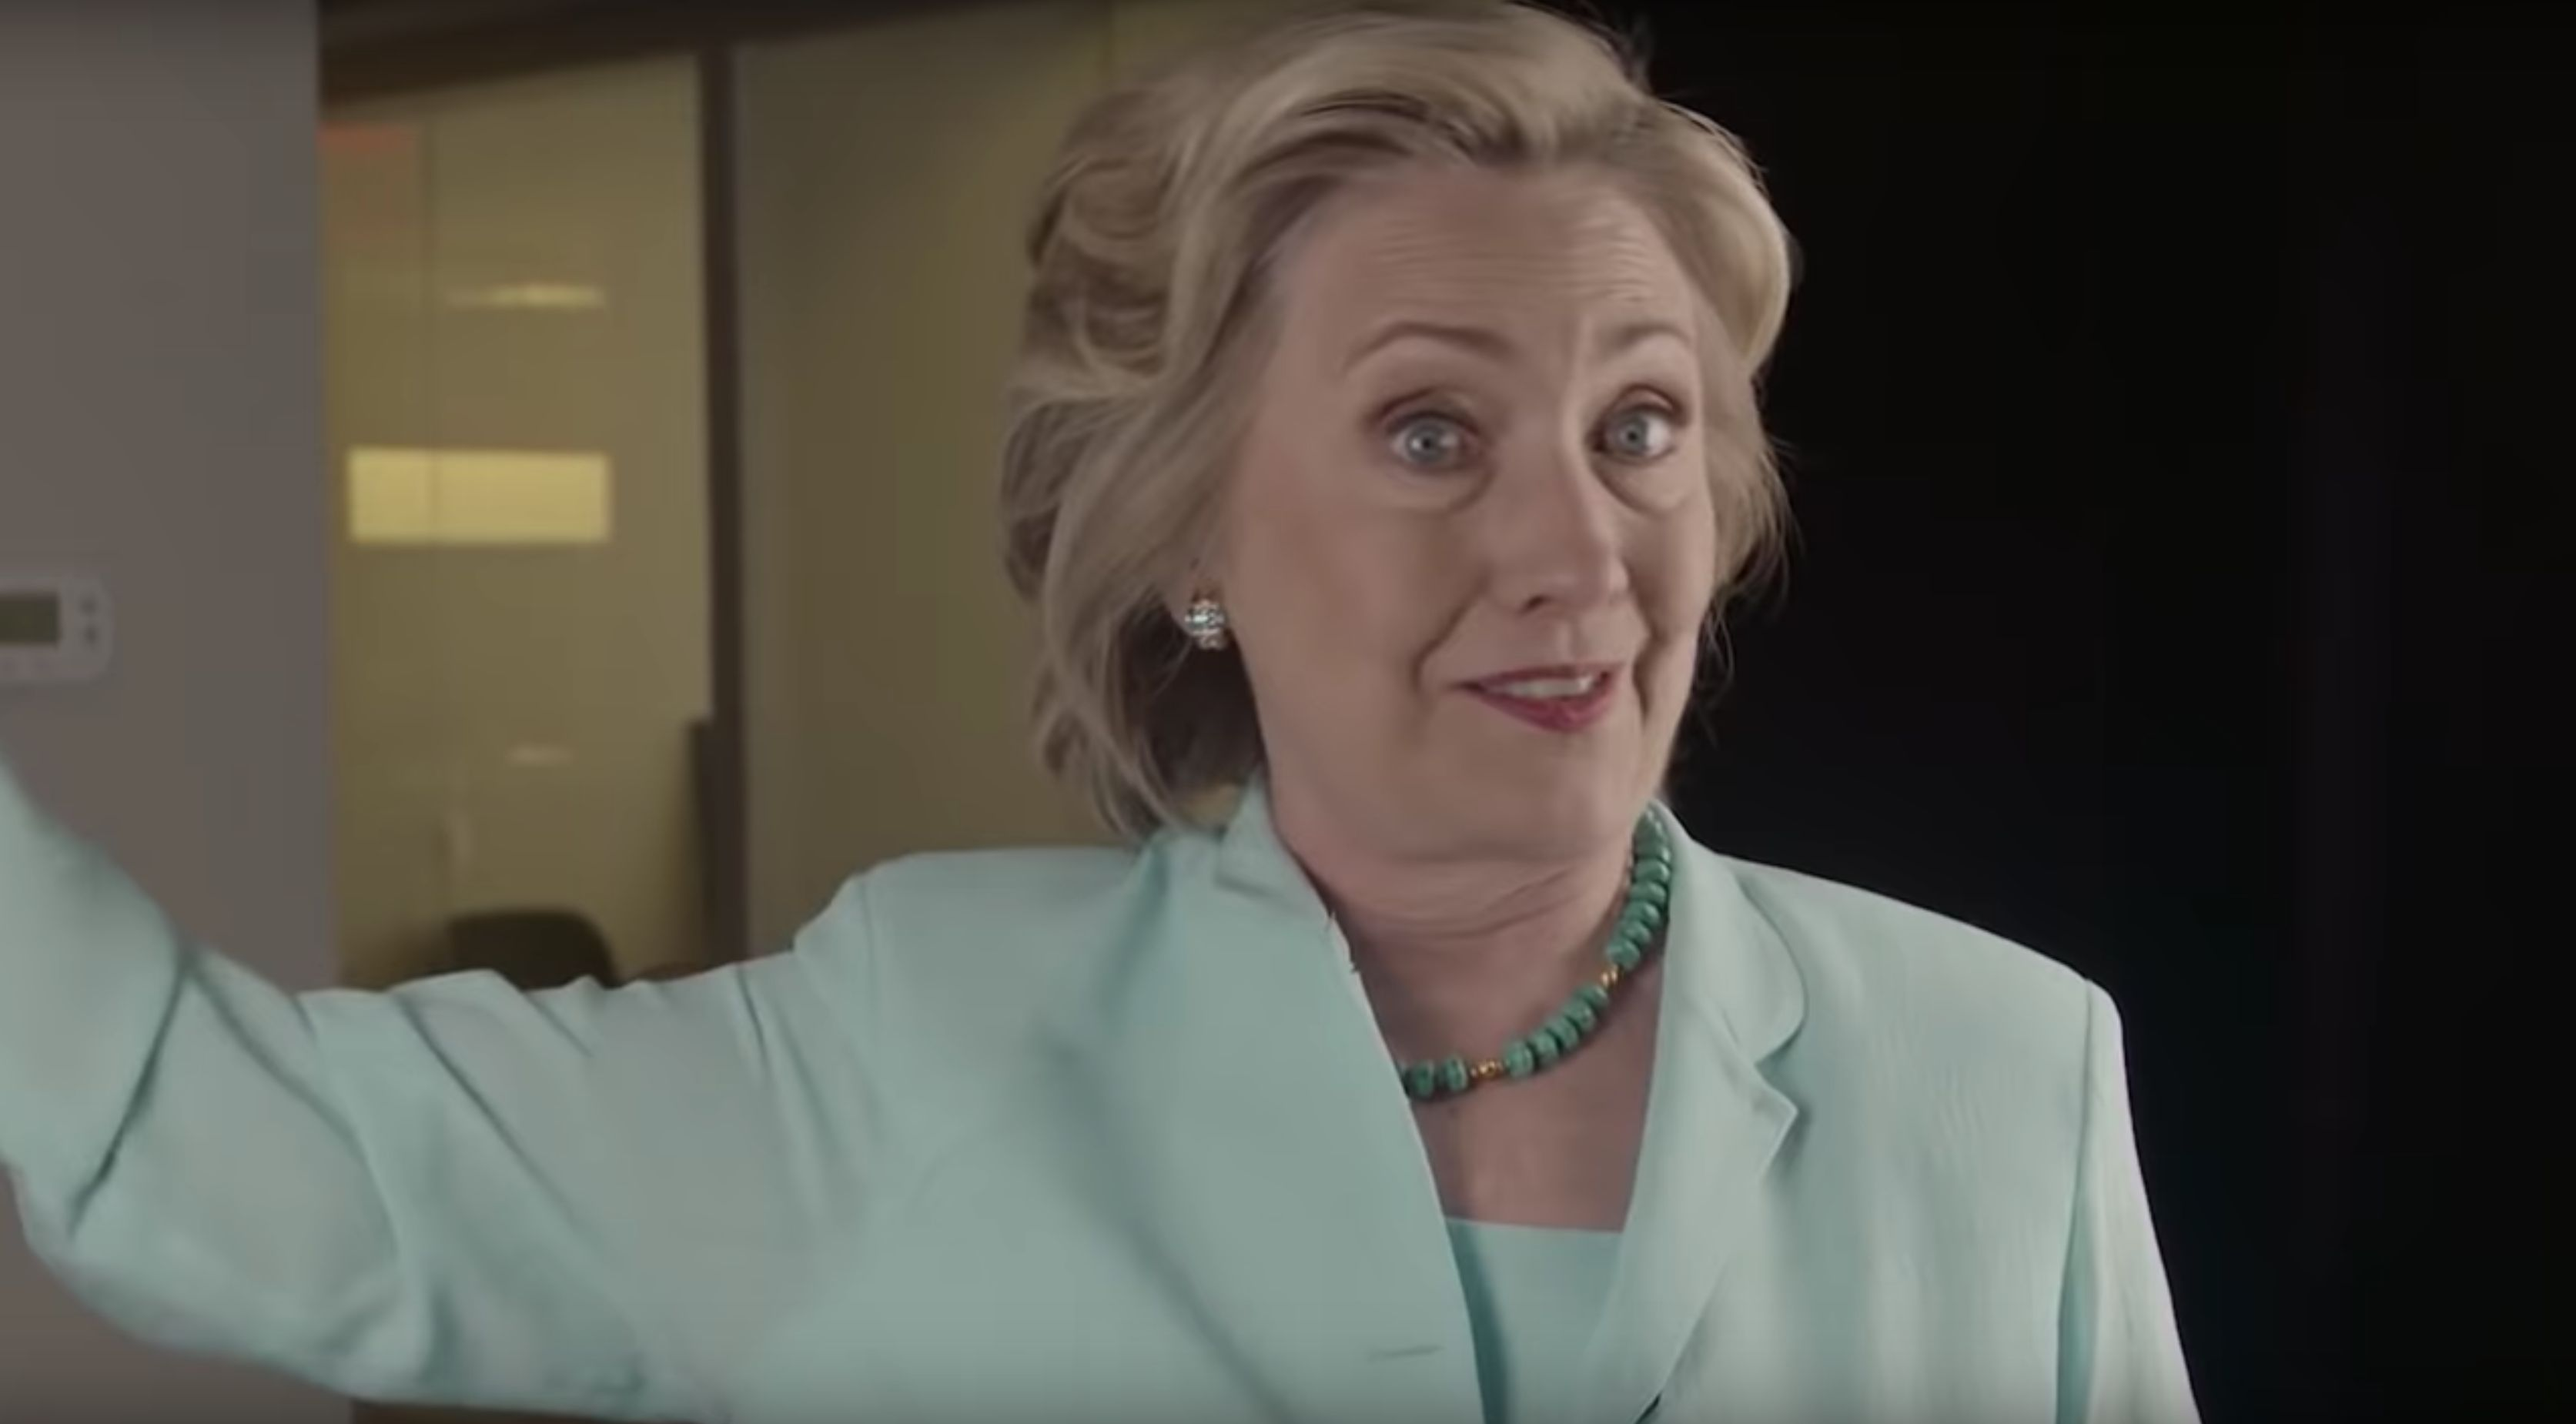 Hillary Telling Stories With 'Bad Lip Reading' Is Much-Needed